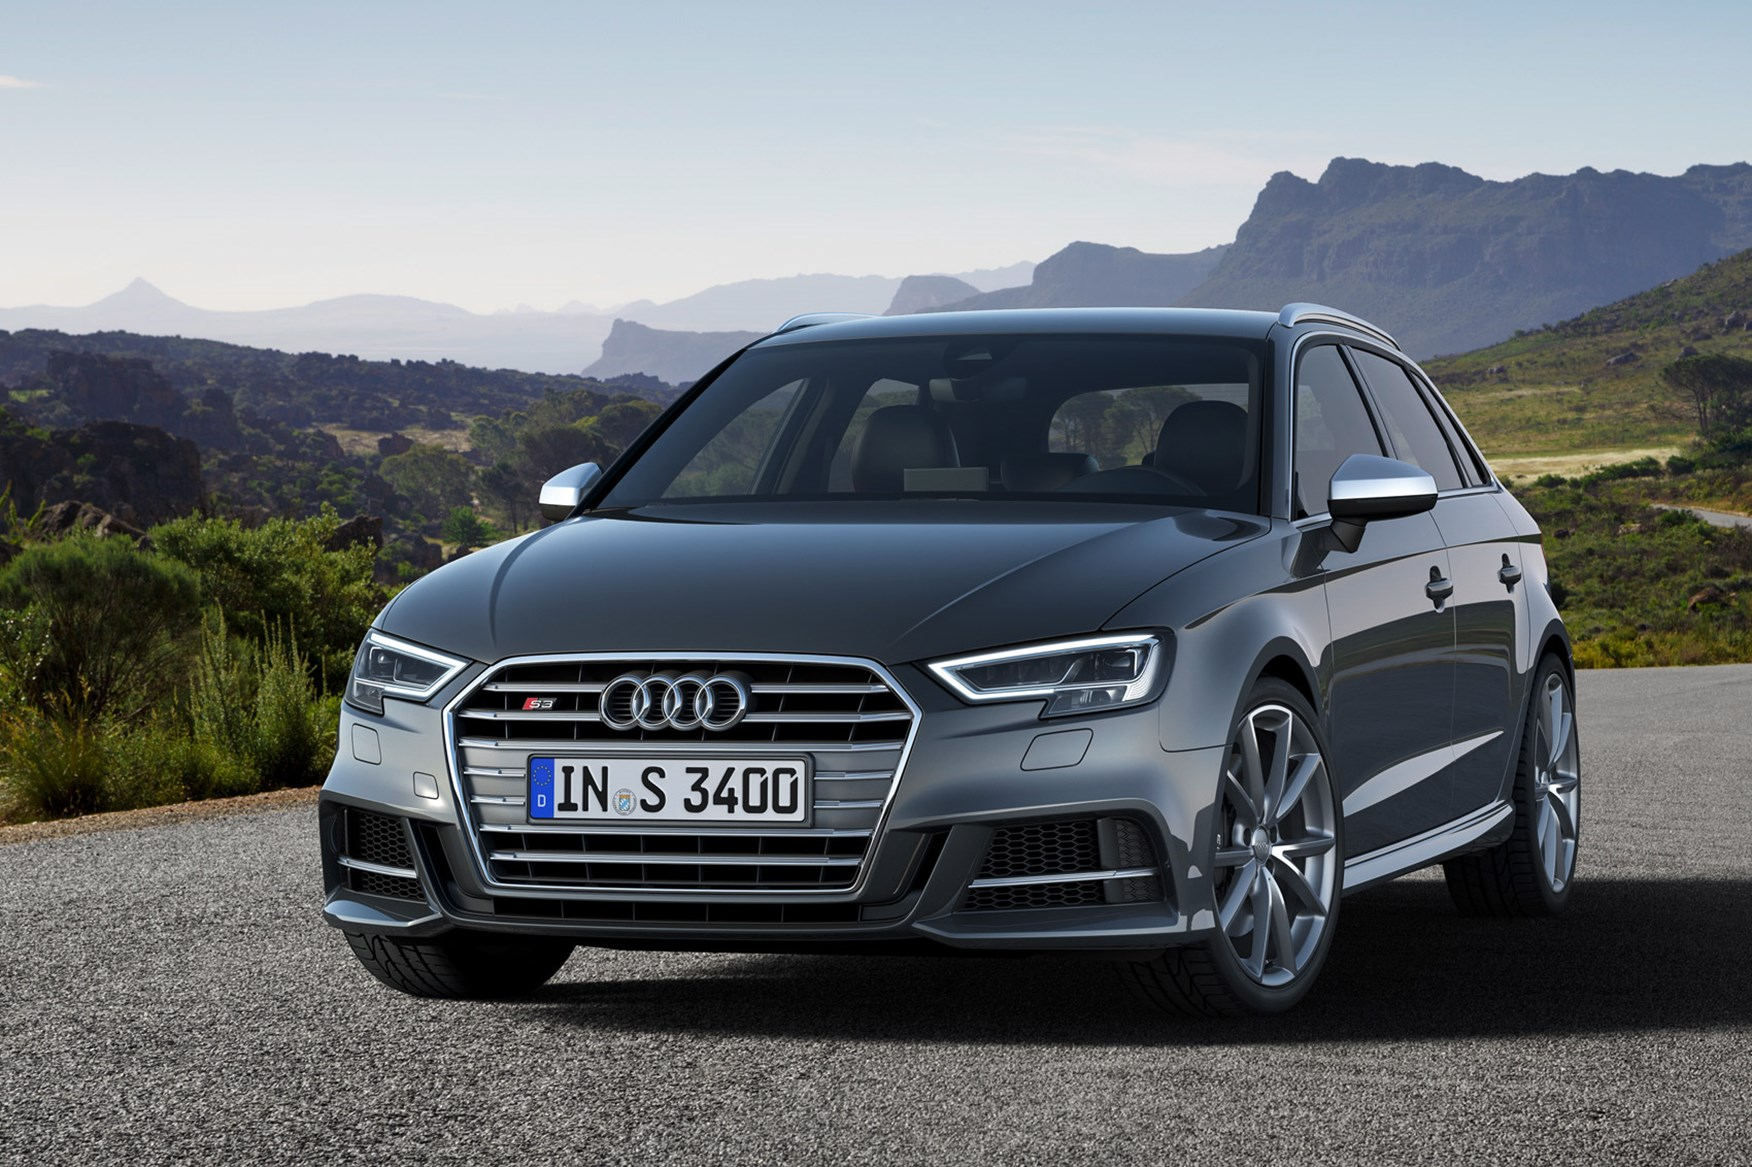 Audi A3 Sportback Sport 1.6 Tdi >> Facelifted Audi A3 revealed: new tech, kit and engines by CAR Magazine